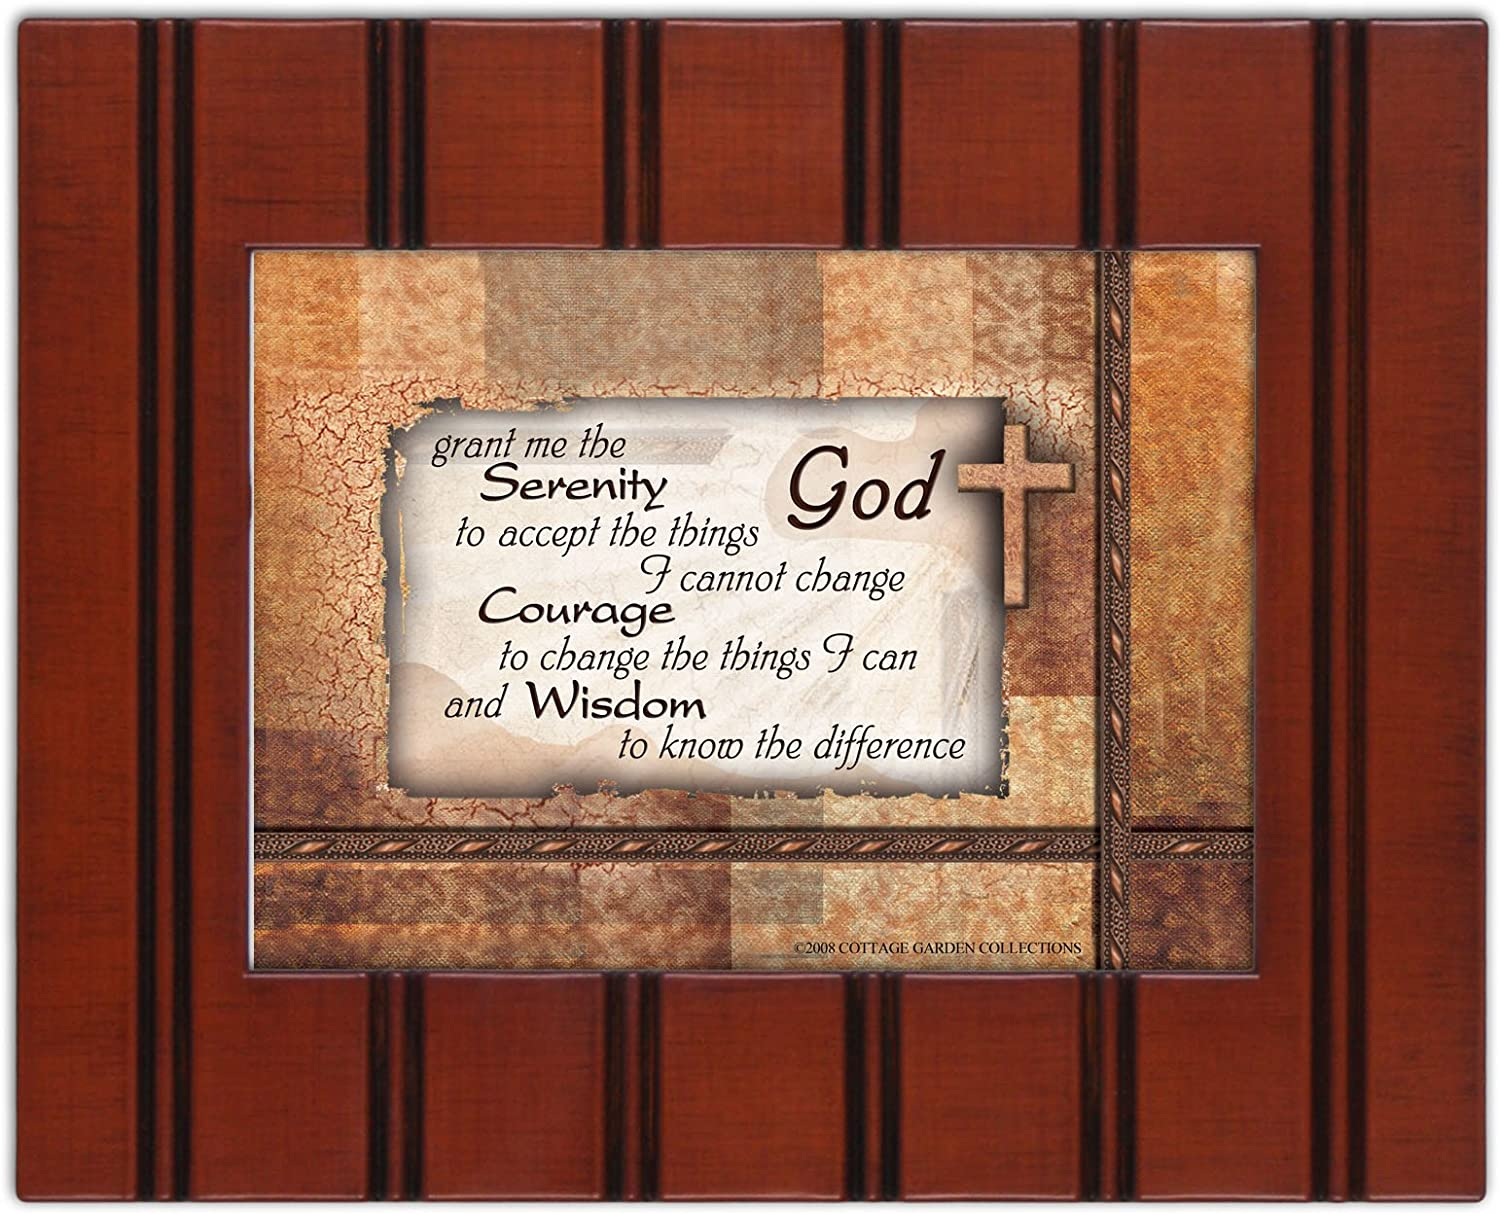 Cottage Garden Serenity Prayer 5x7 Wood Grain Frame with Easel Back and Wall Hanger